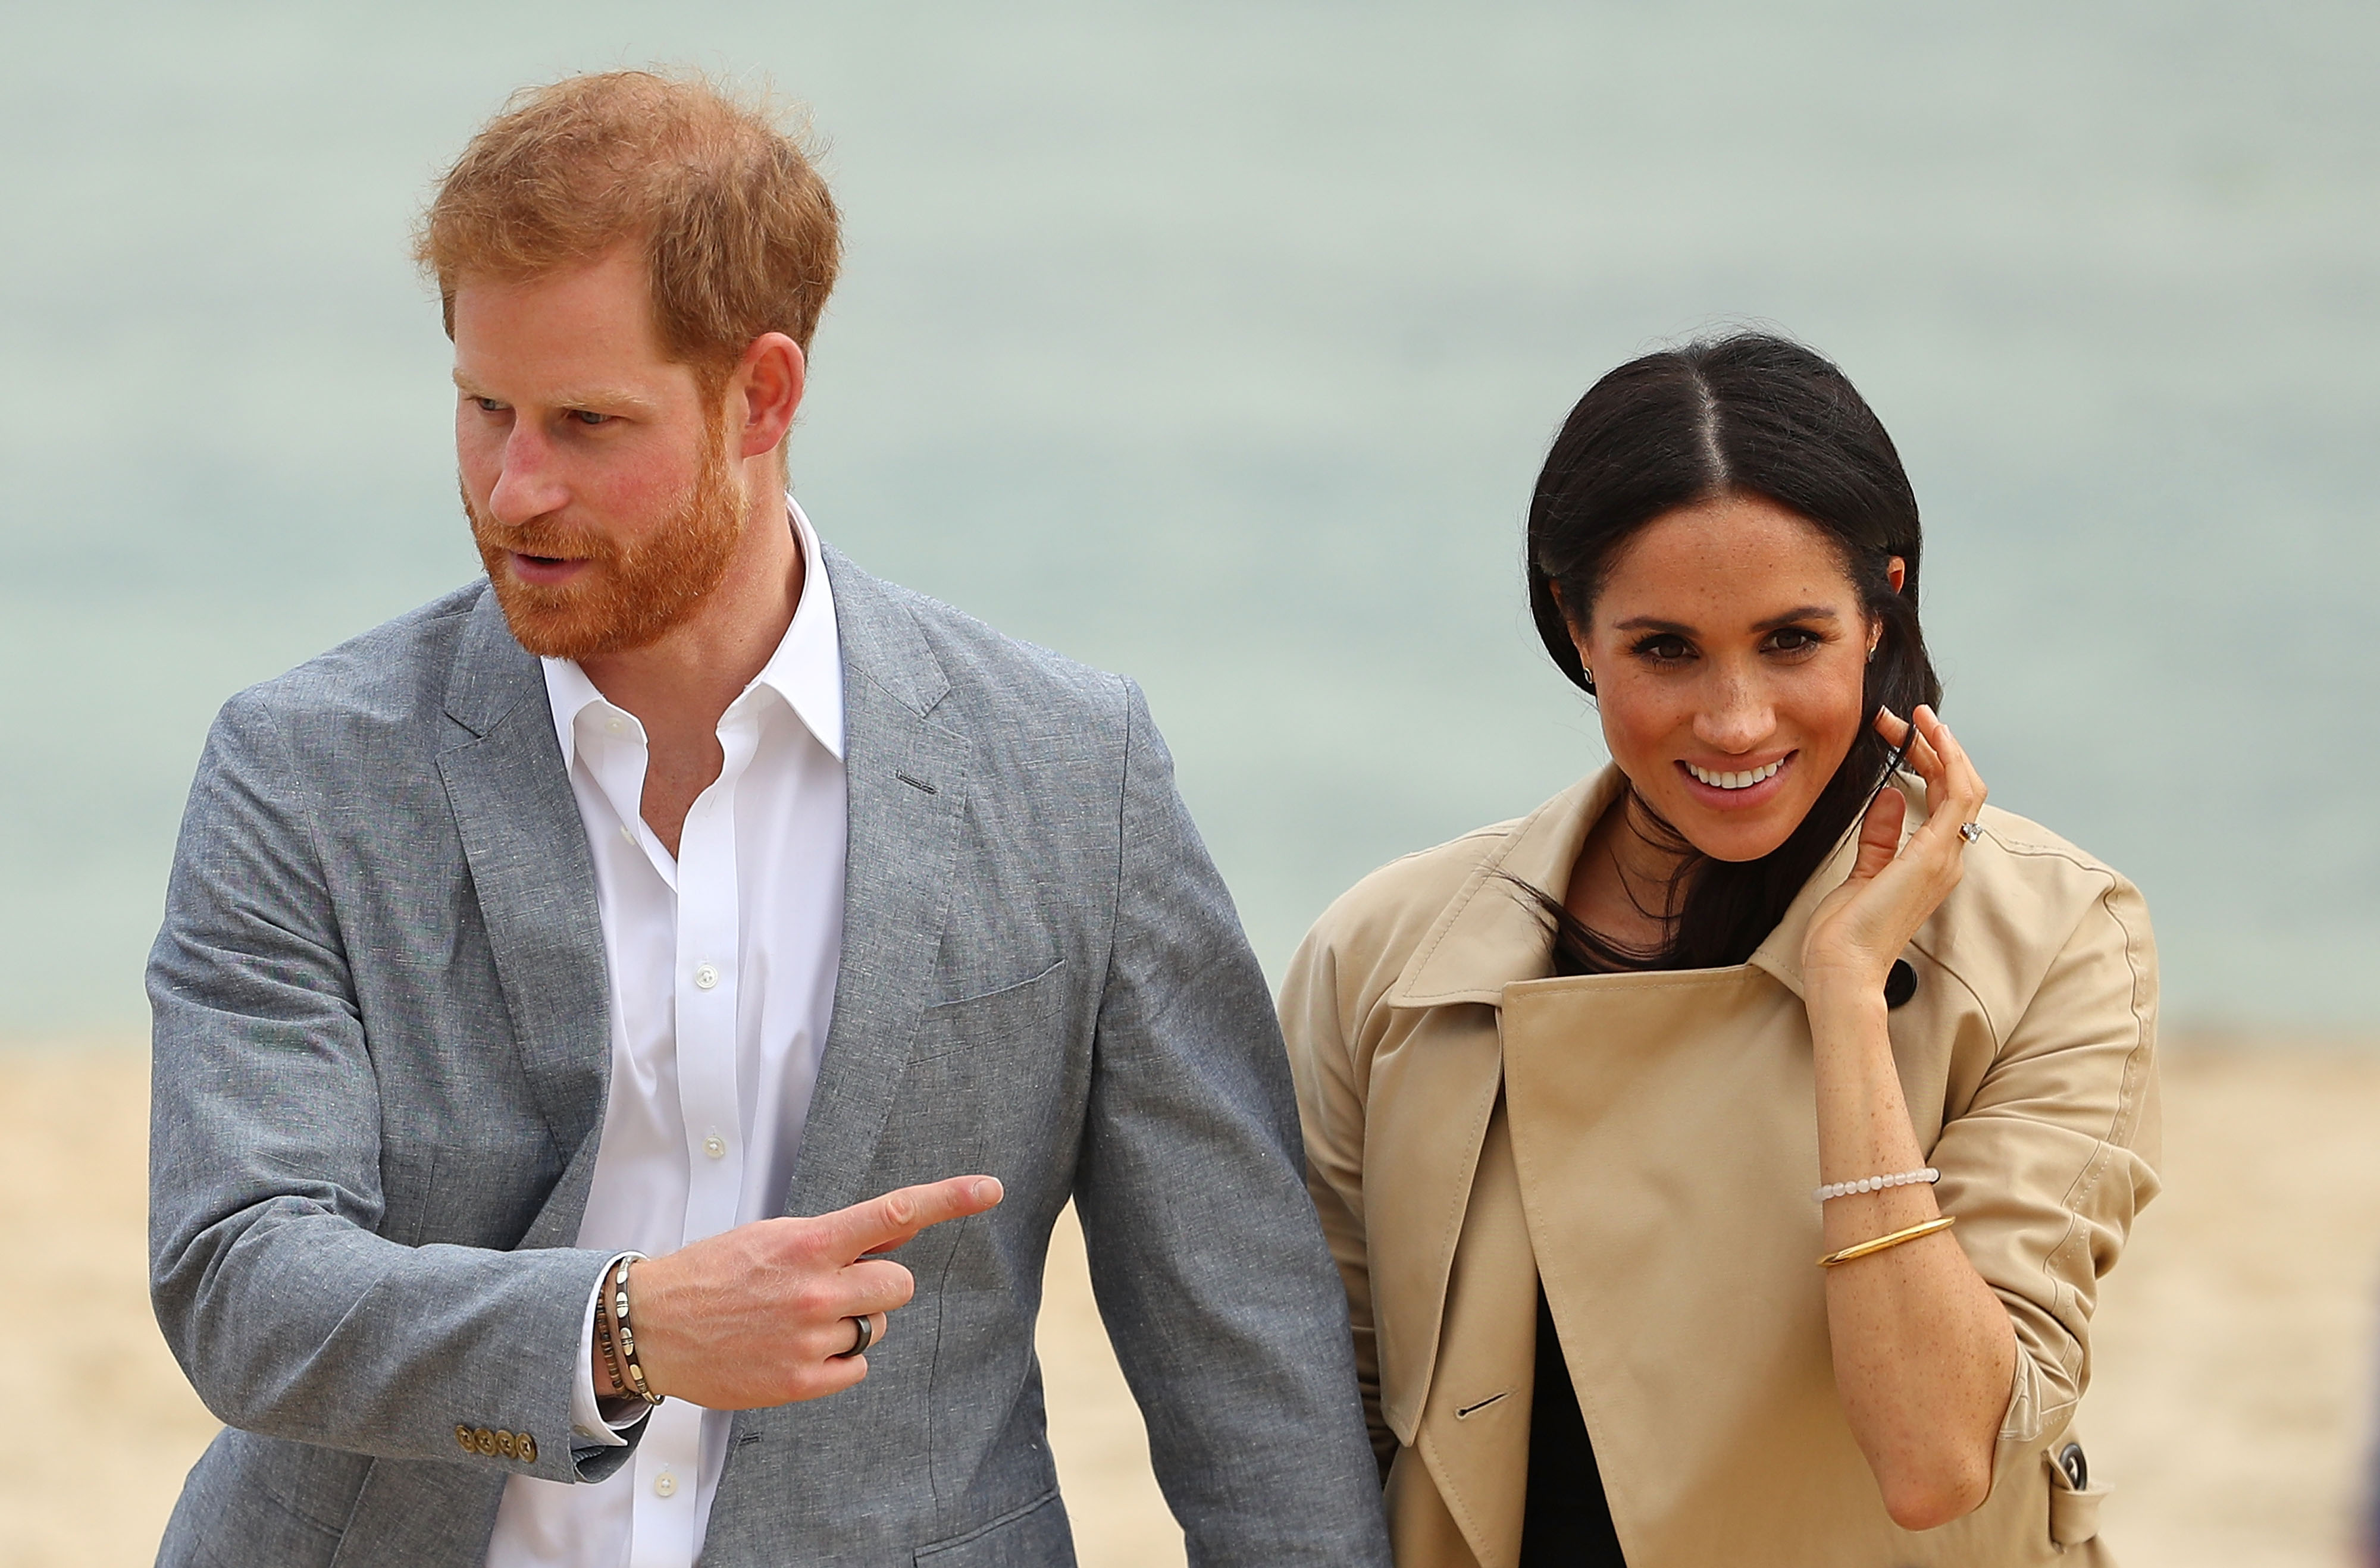 Prince Harry Oura ring